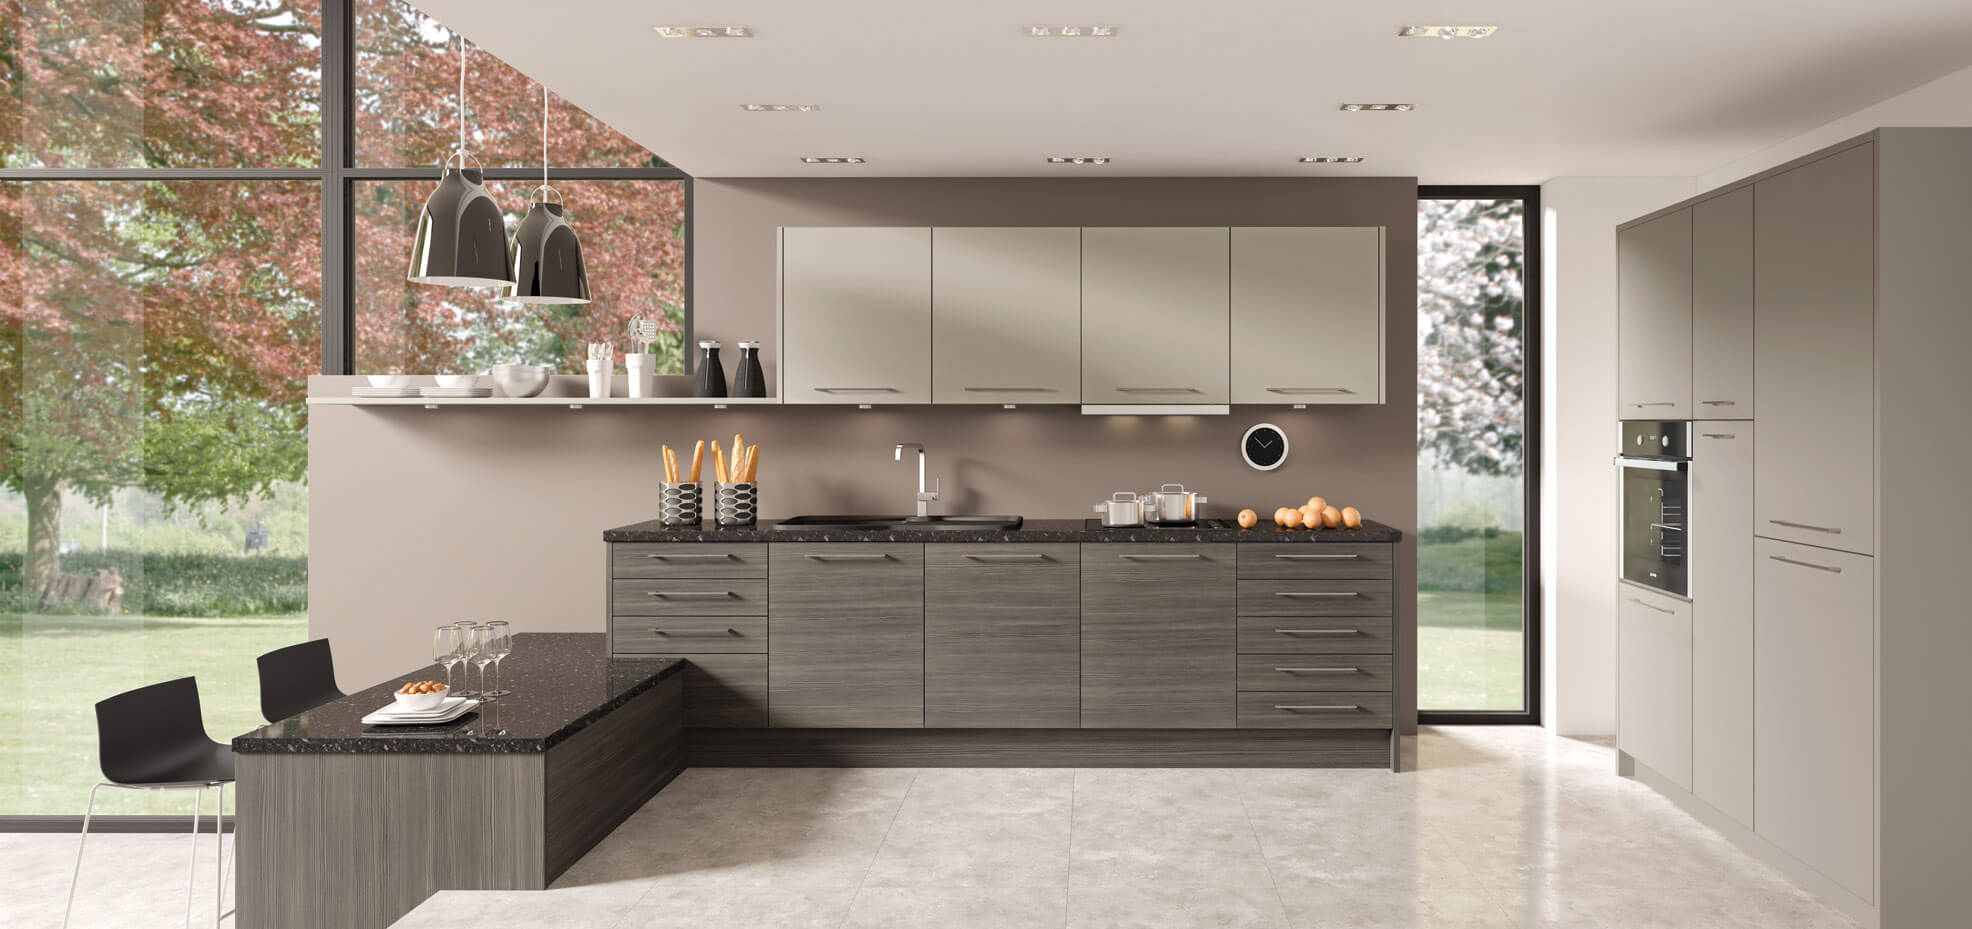 Eco-Kitchens-Avola-Gallery1